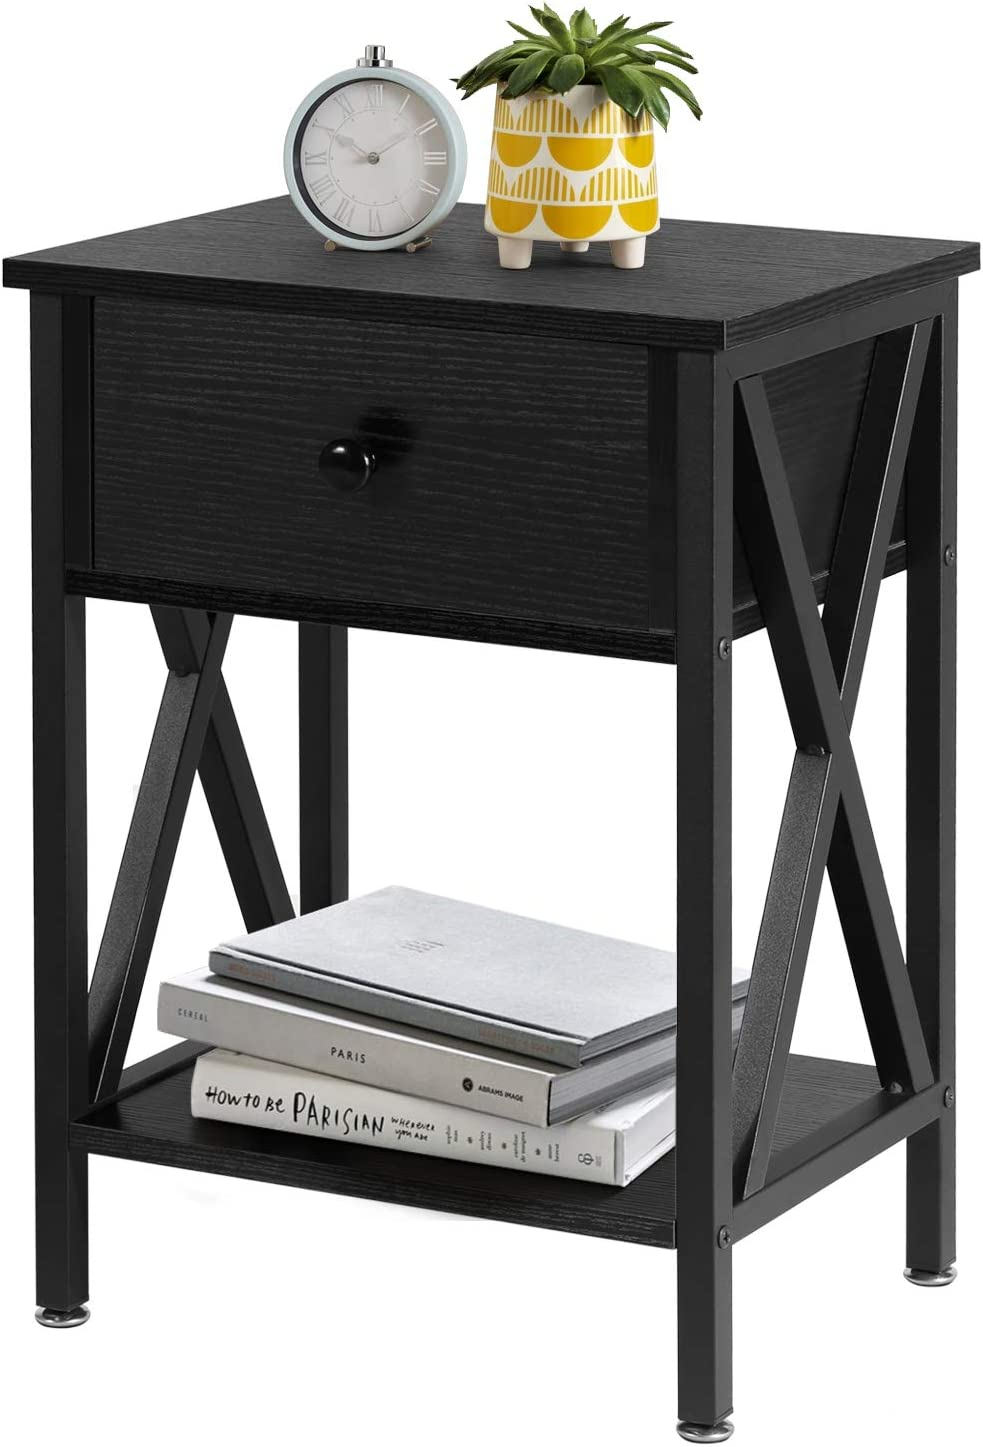 VECELO Versatile Nightstands X-Design Side End Table Night Stand Storage Shelf with Bin Drawer for Living Room Bedroom, Oak